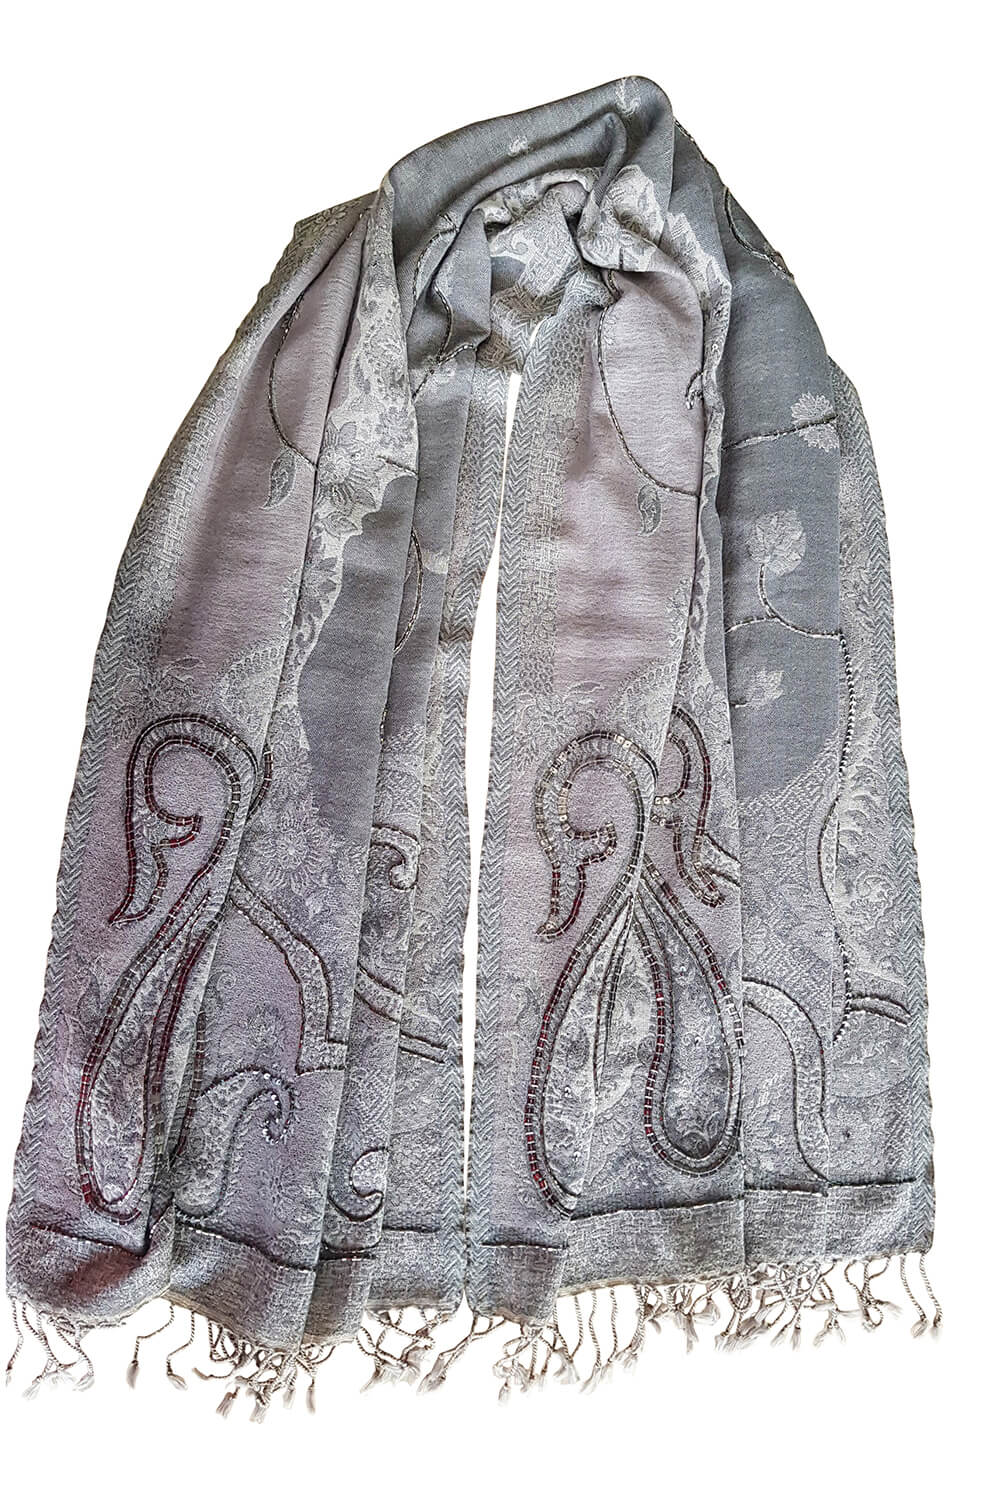 wool pashmina with paisley print grey and mauve